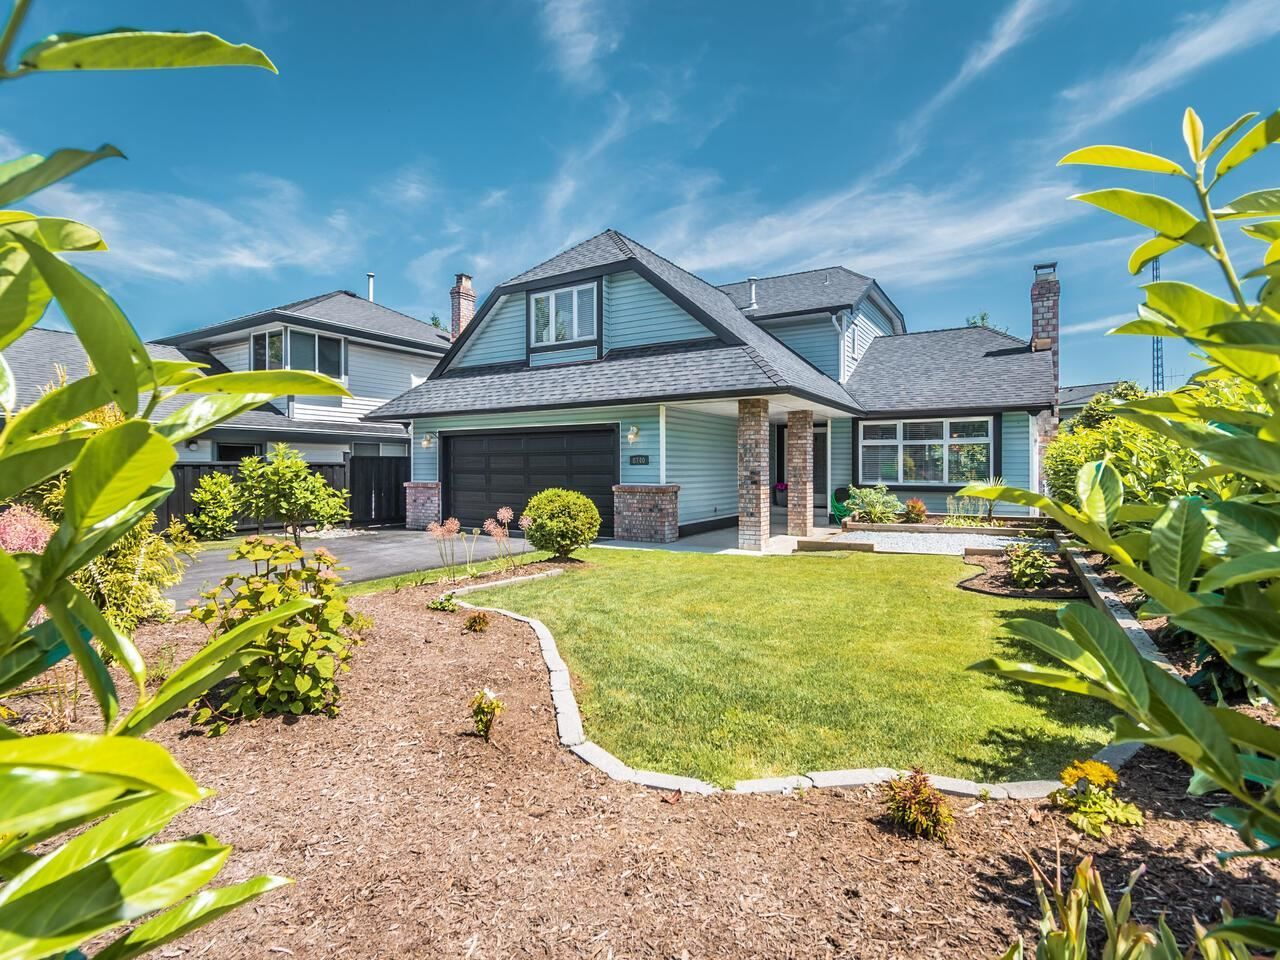 """Main Photo: 8740 213 Street in Langley: Walnut Grove House for sale in """"Forest Hills"""" : MLS®# R2595638"""